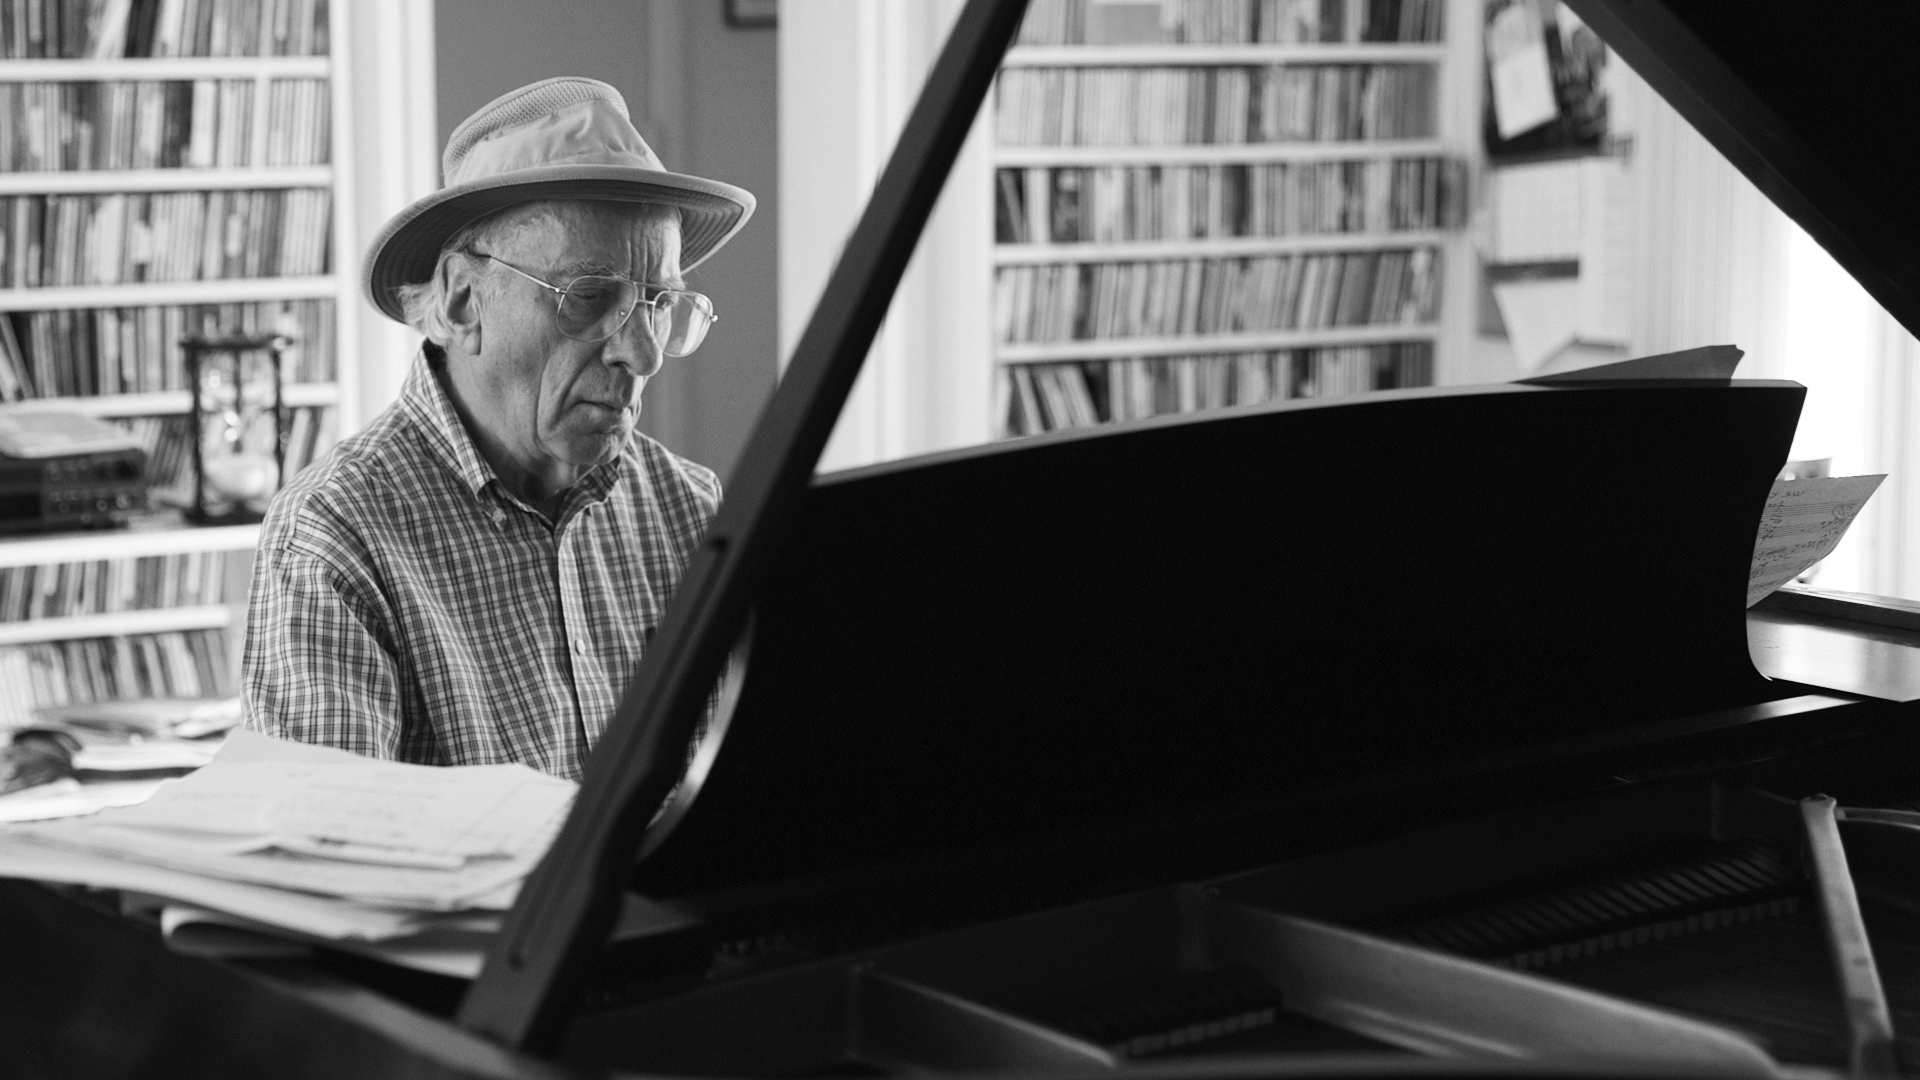 Caption: Dick Hyman, Credit: Nick Michael